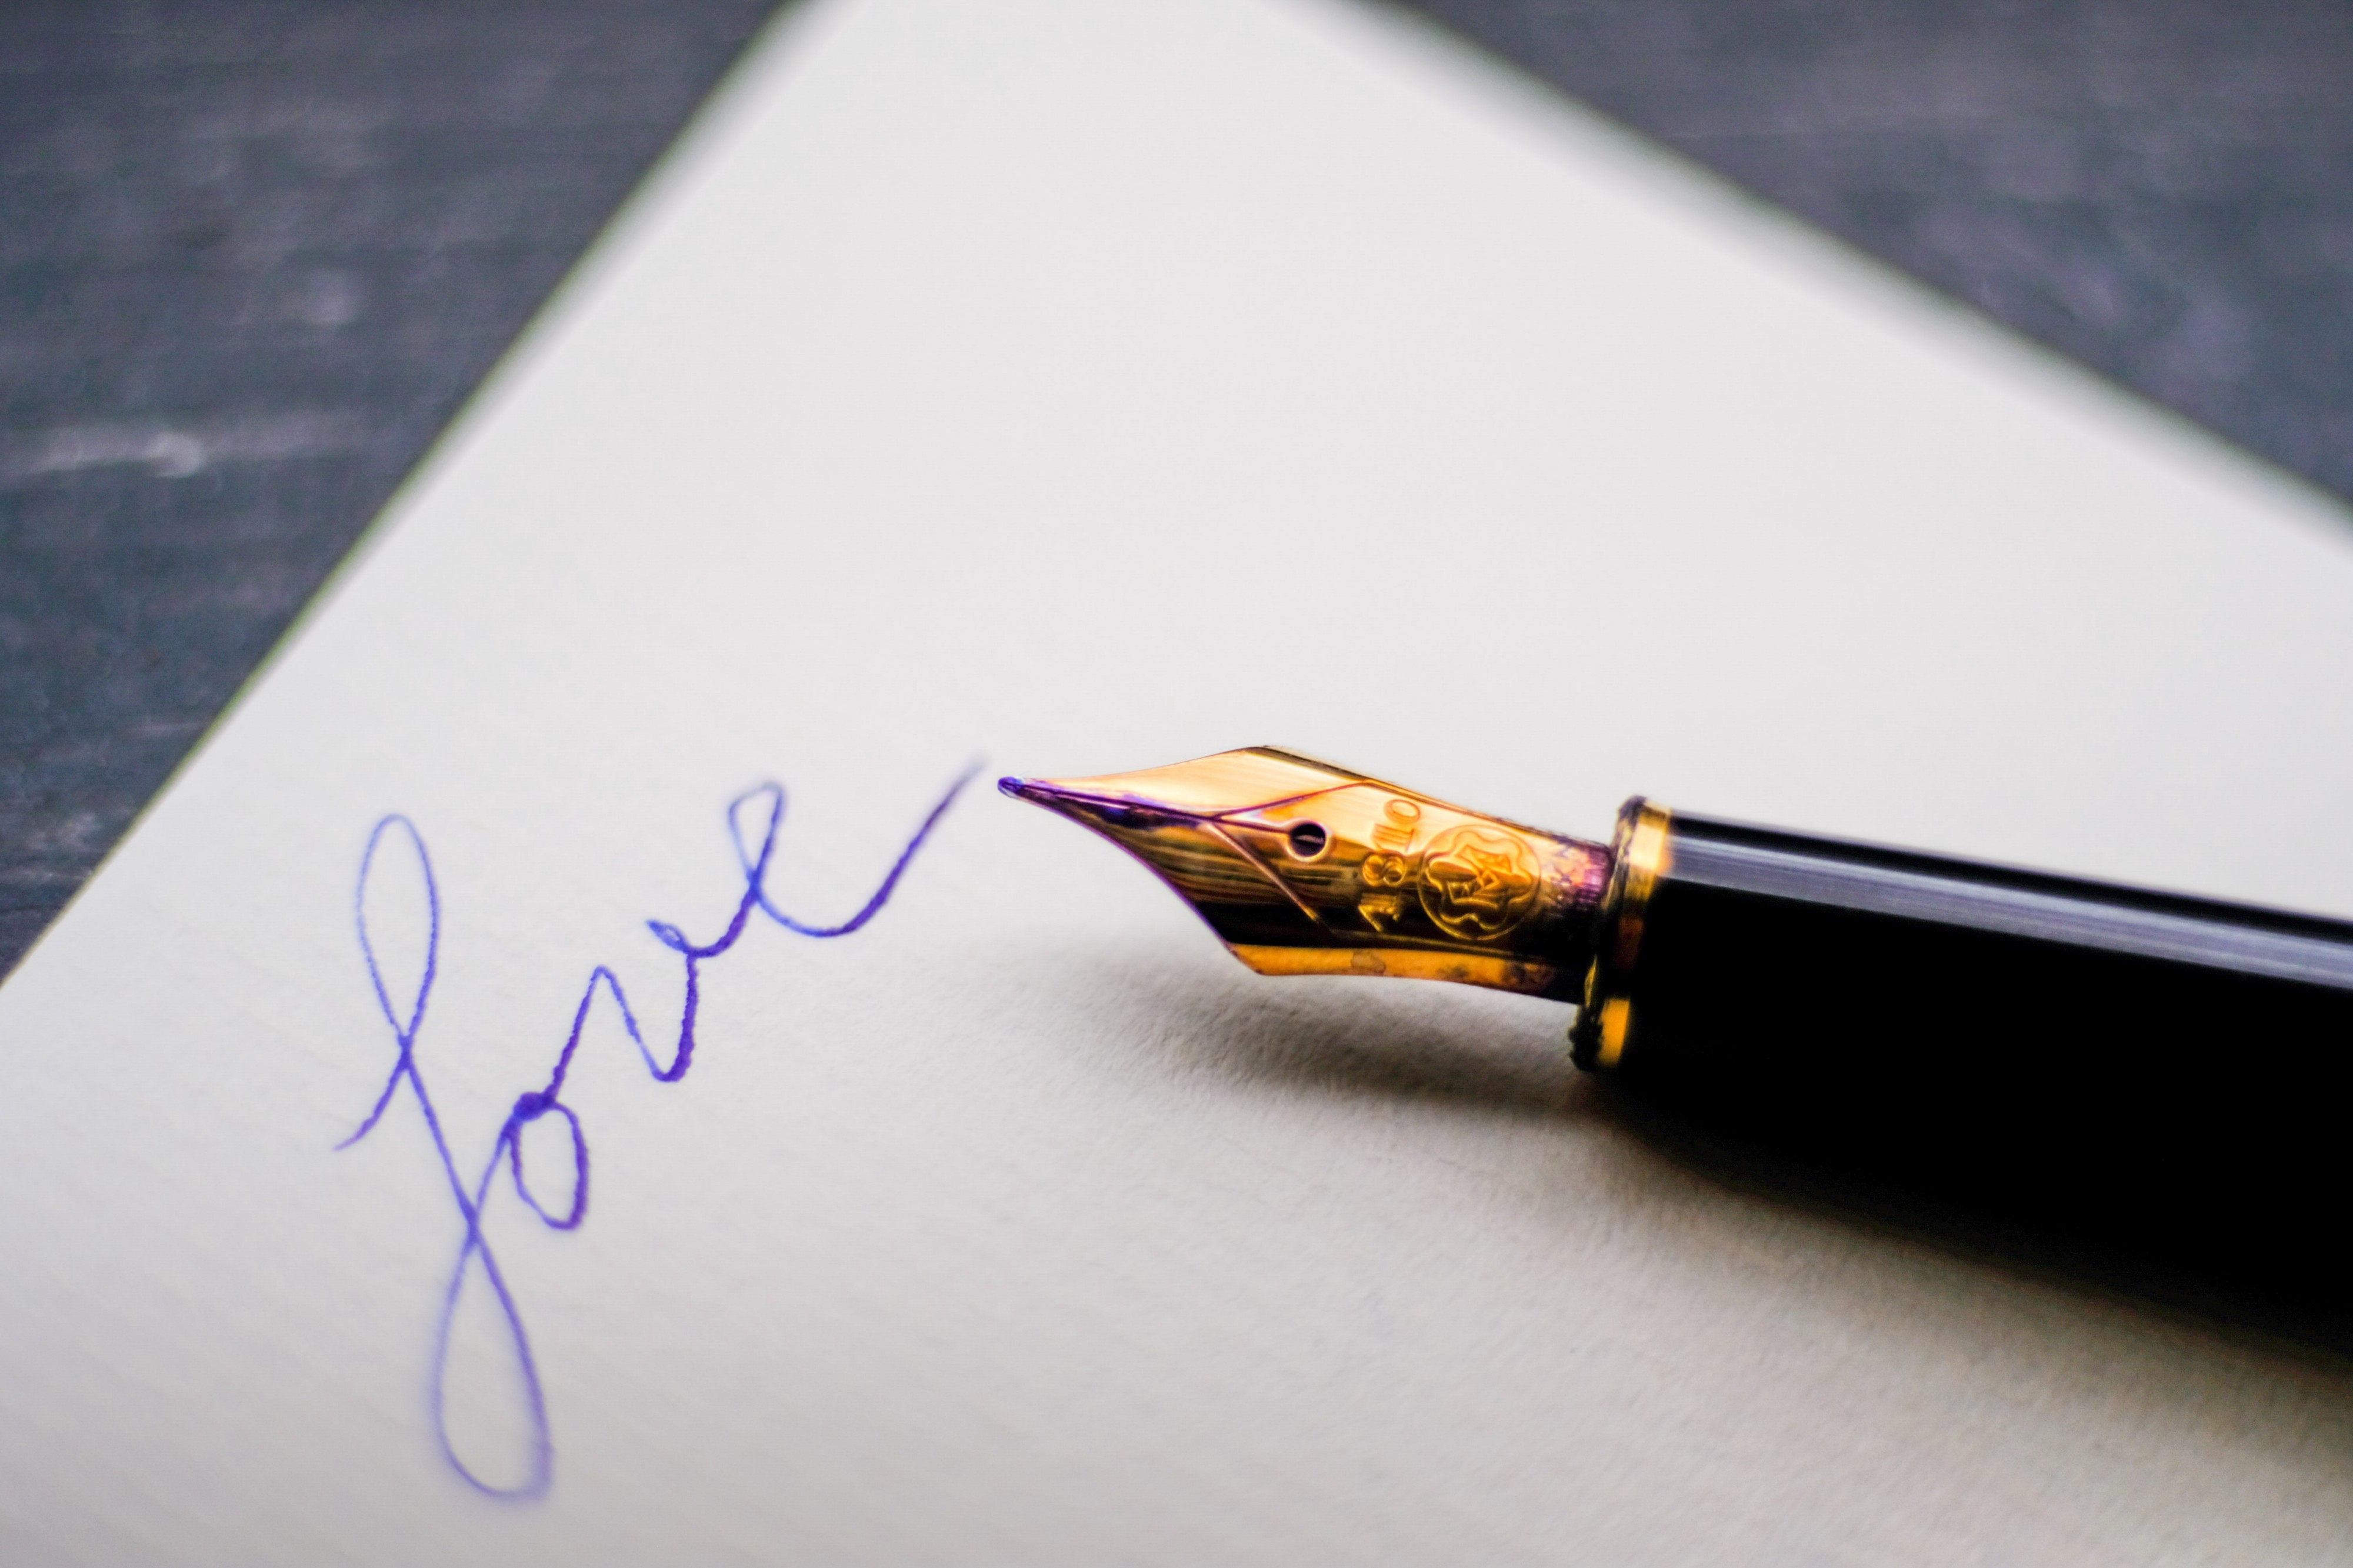 Which Statement About Using A Handwritten Cover Letter Is True? from miro.medium.com